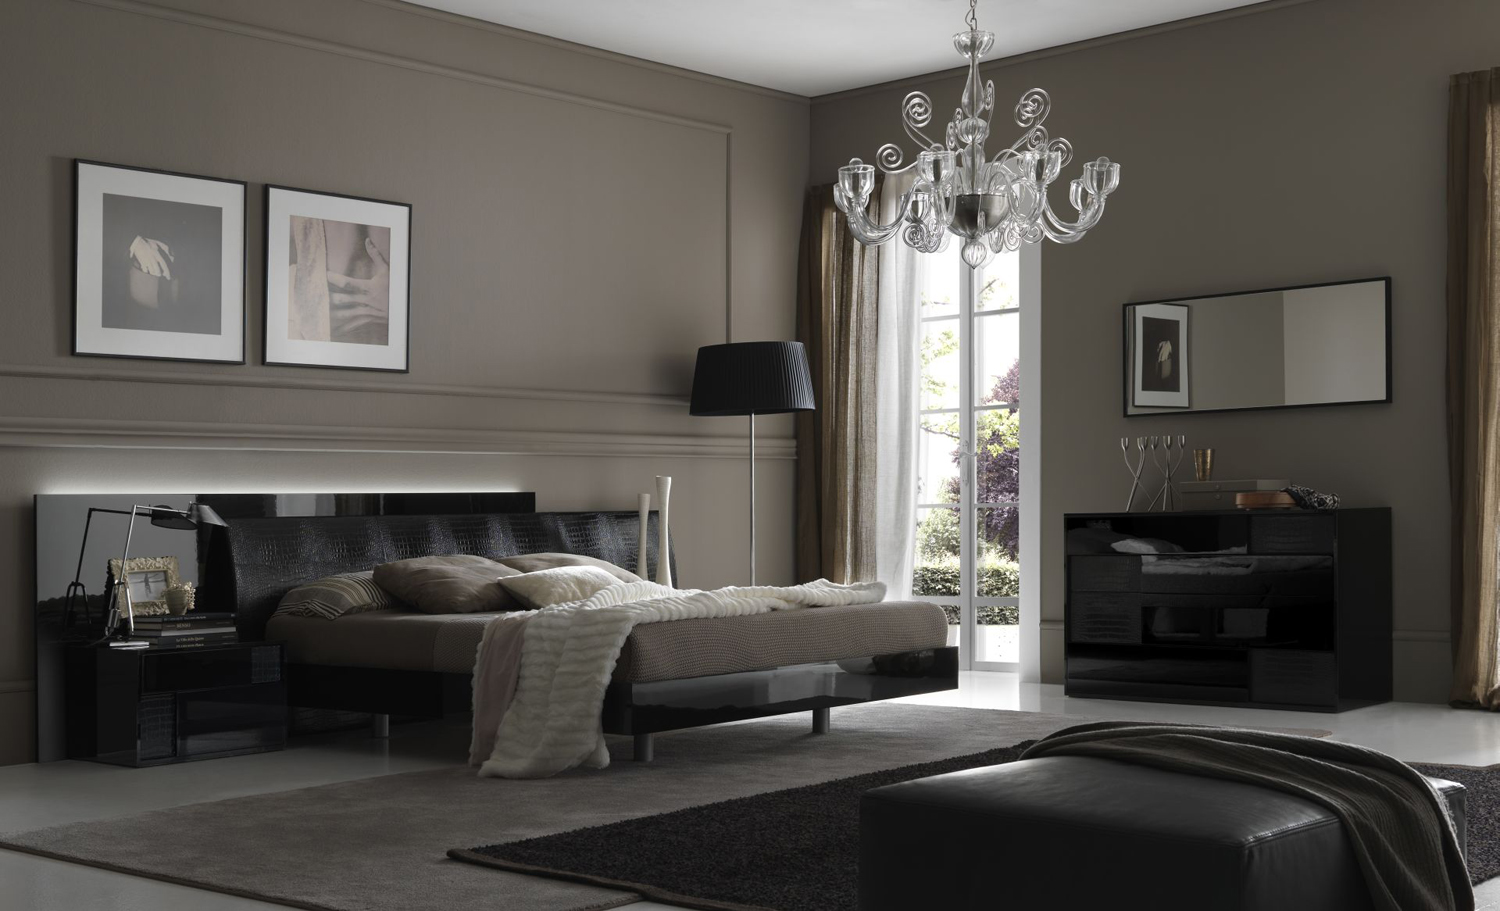 Bedroom decorating ideas from evinco for Modern bedroom interior